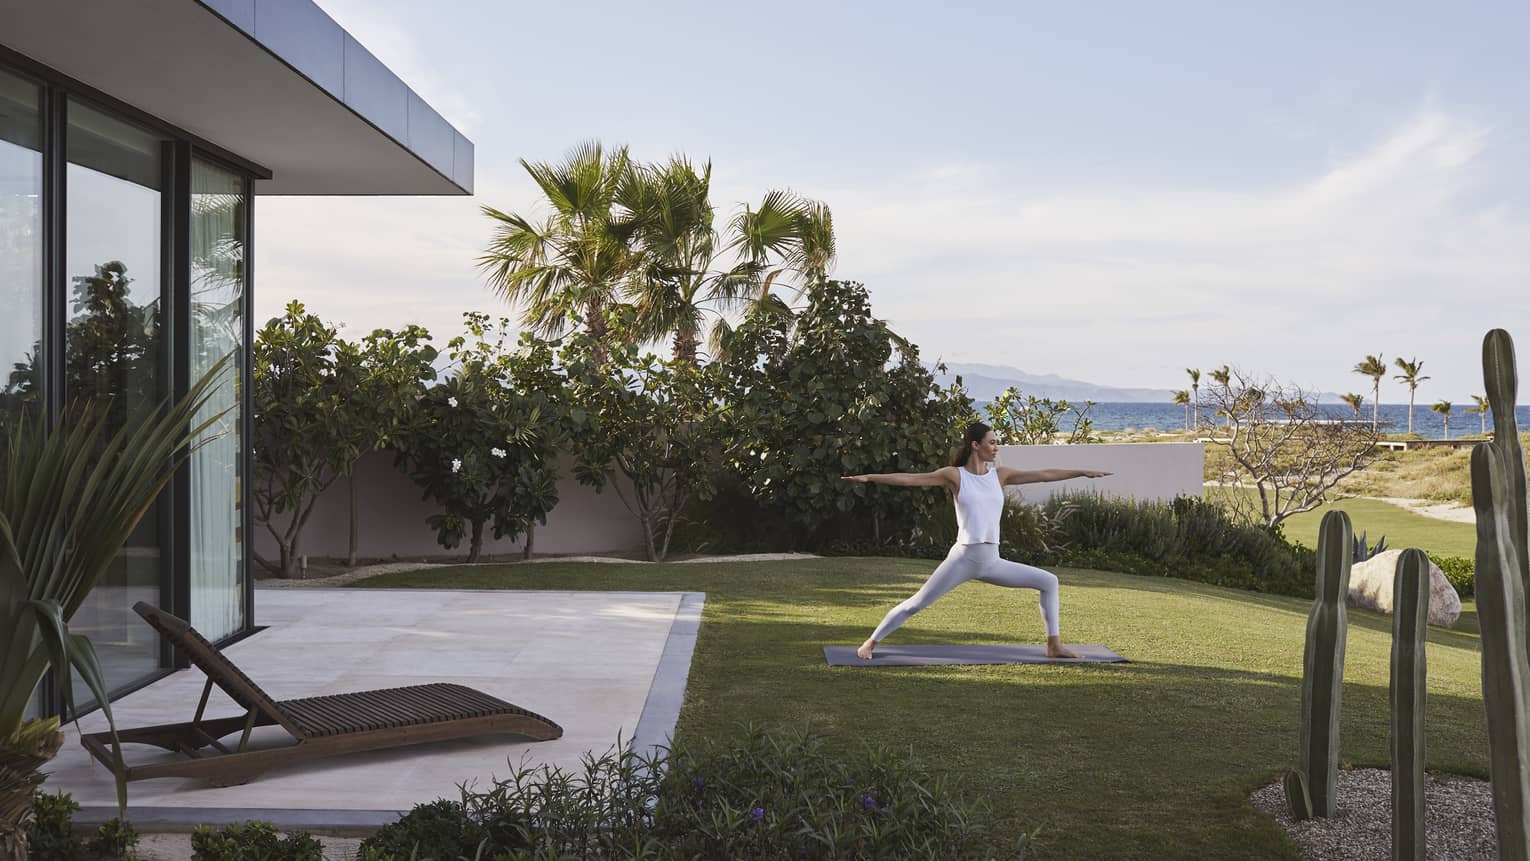 Woman doing yoga on a lawn outside her suite, with the ocean and sky in the background.